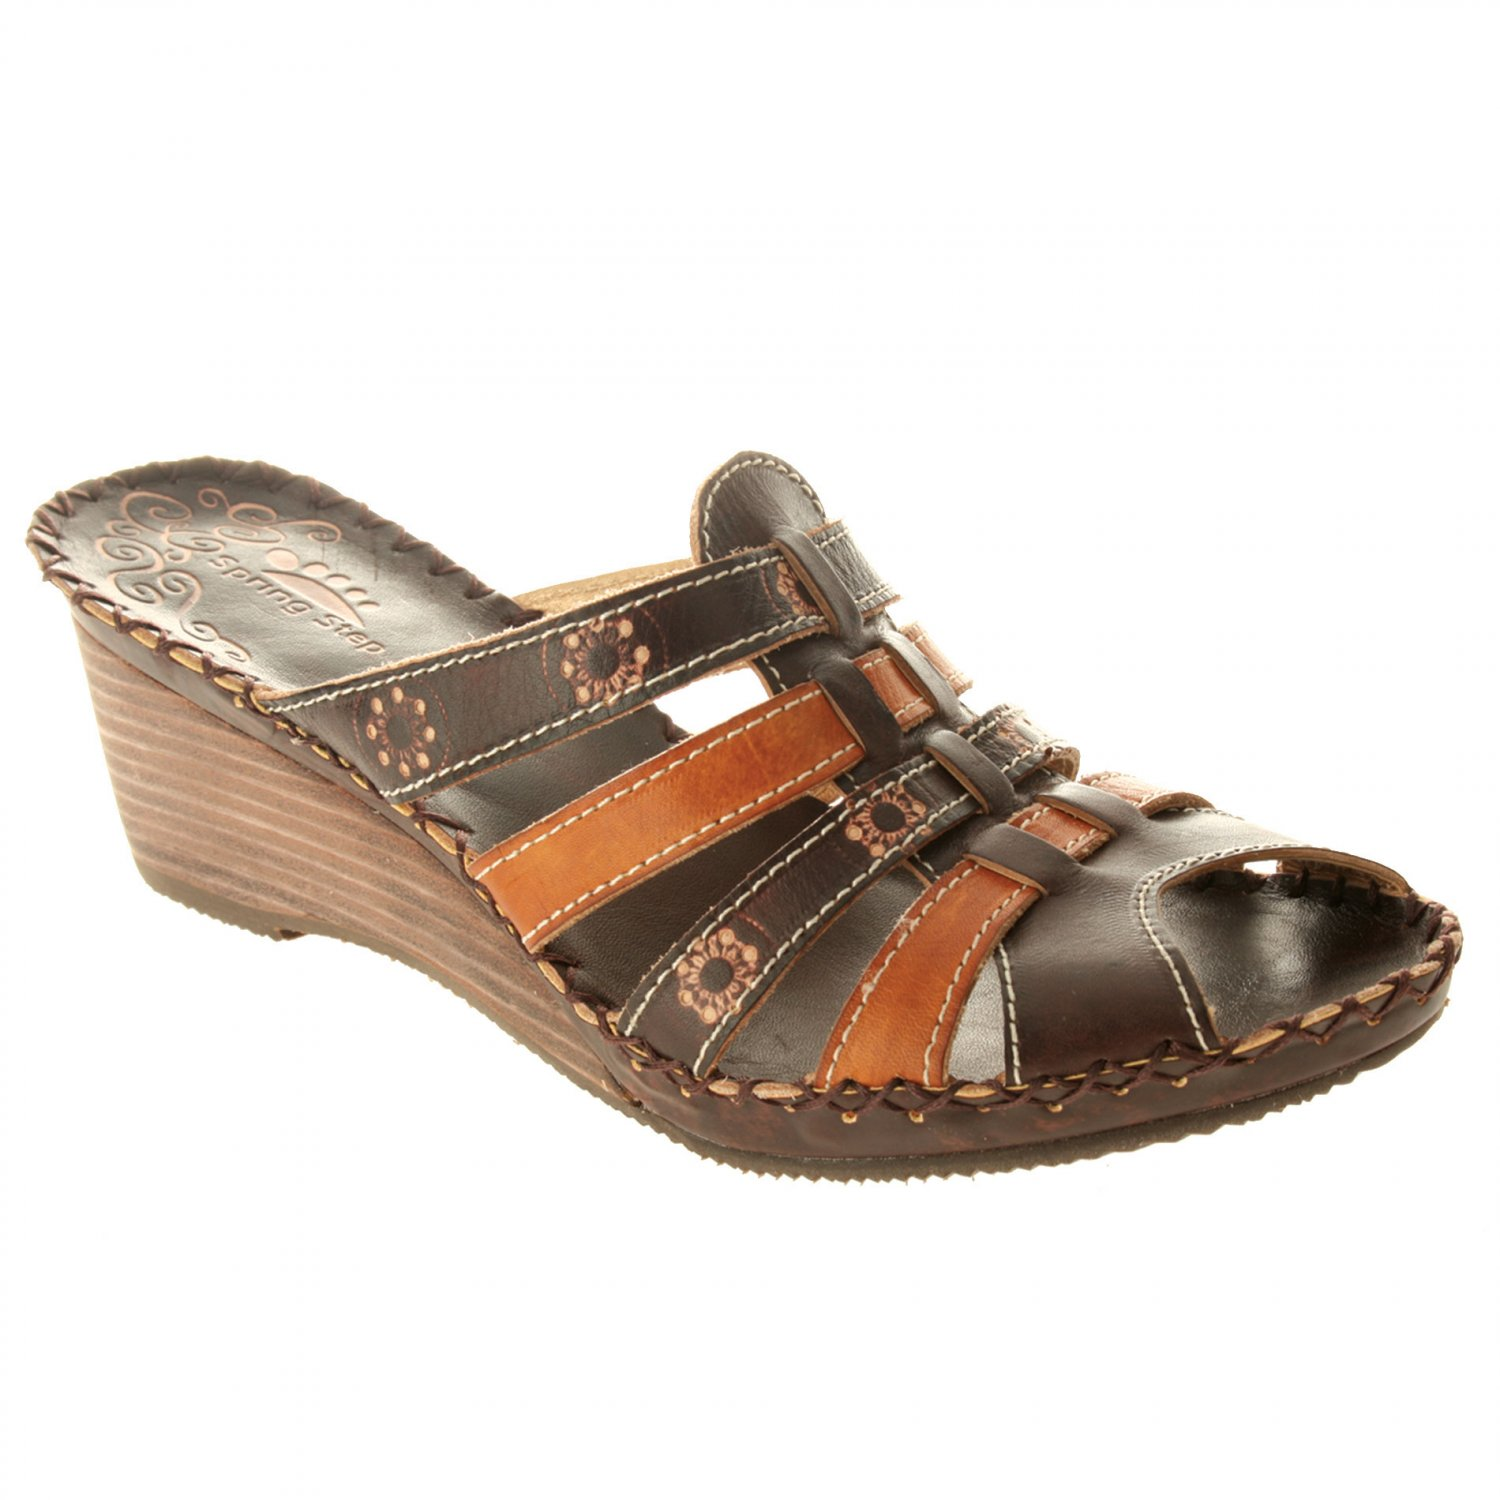 Spring Step CAMBRIDGE Sandals Shoes All Sizes & Colors